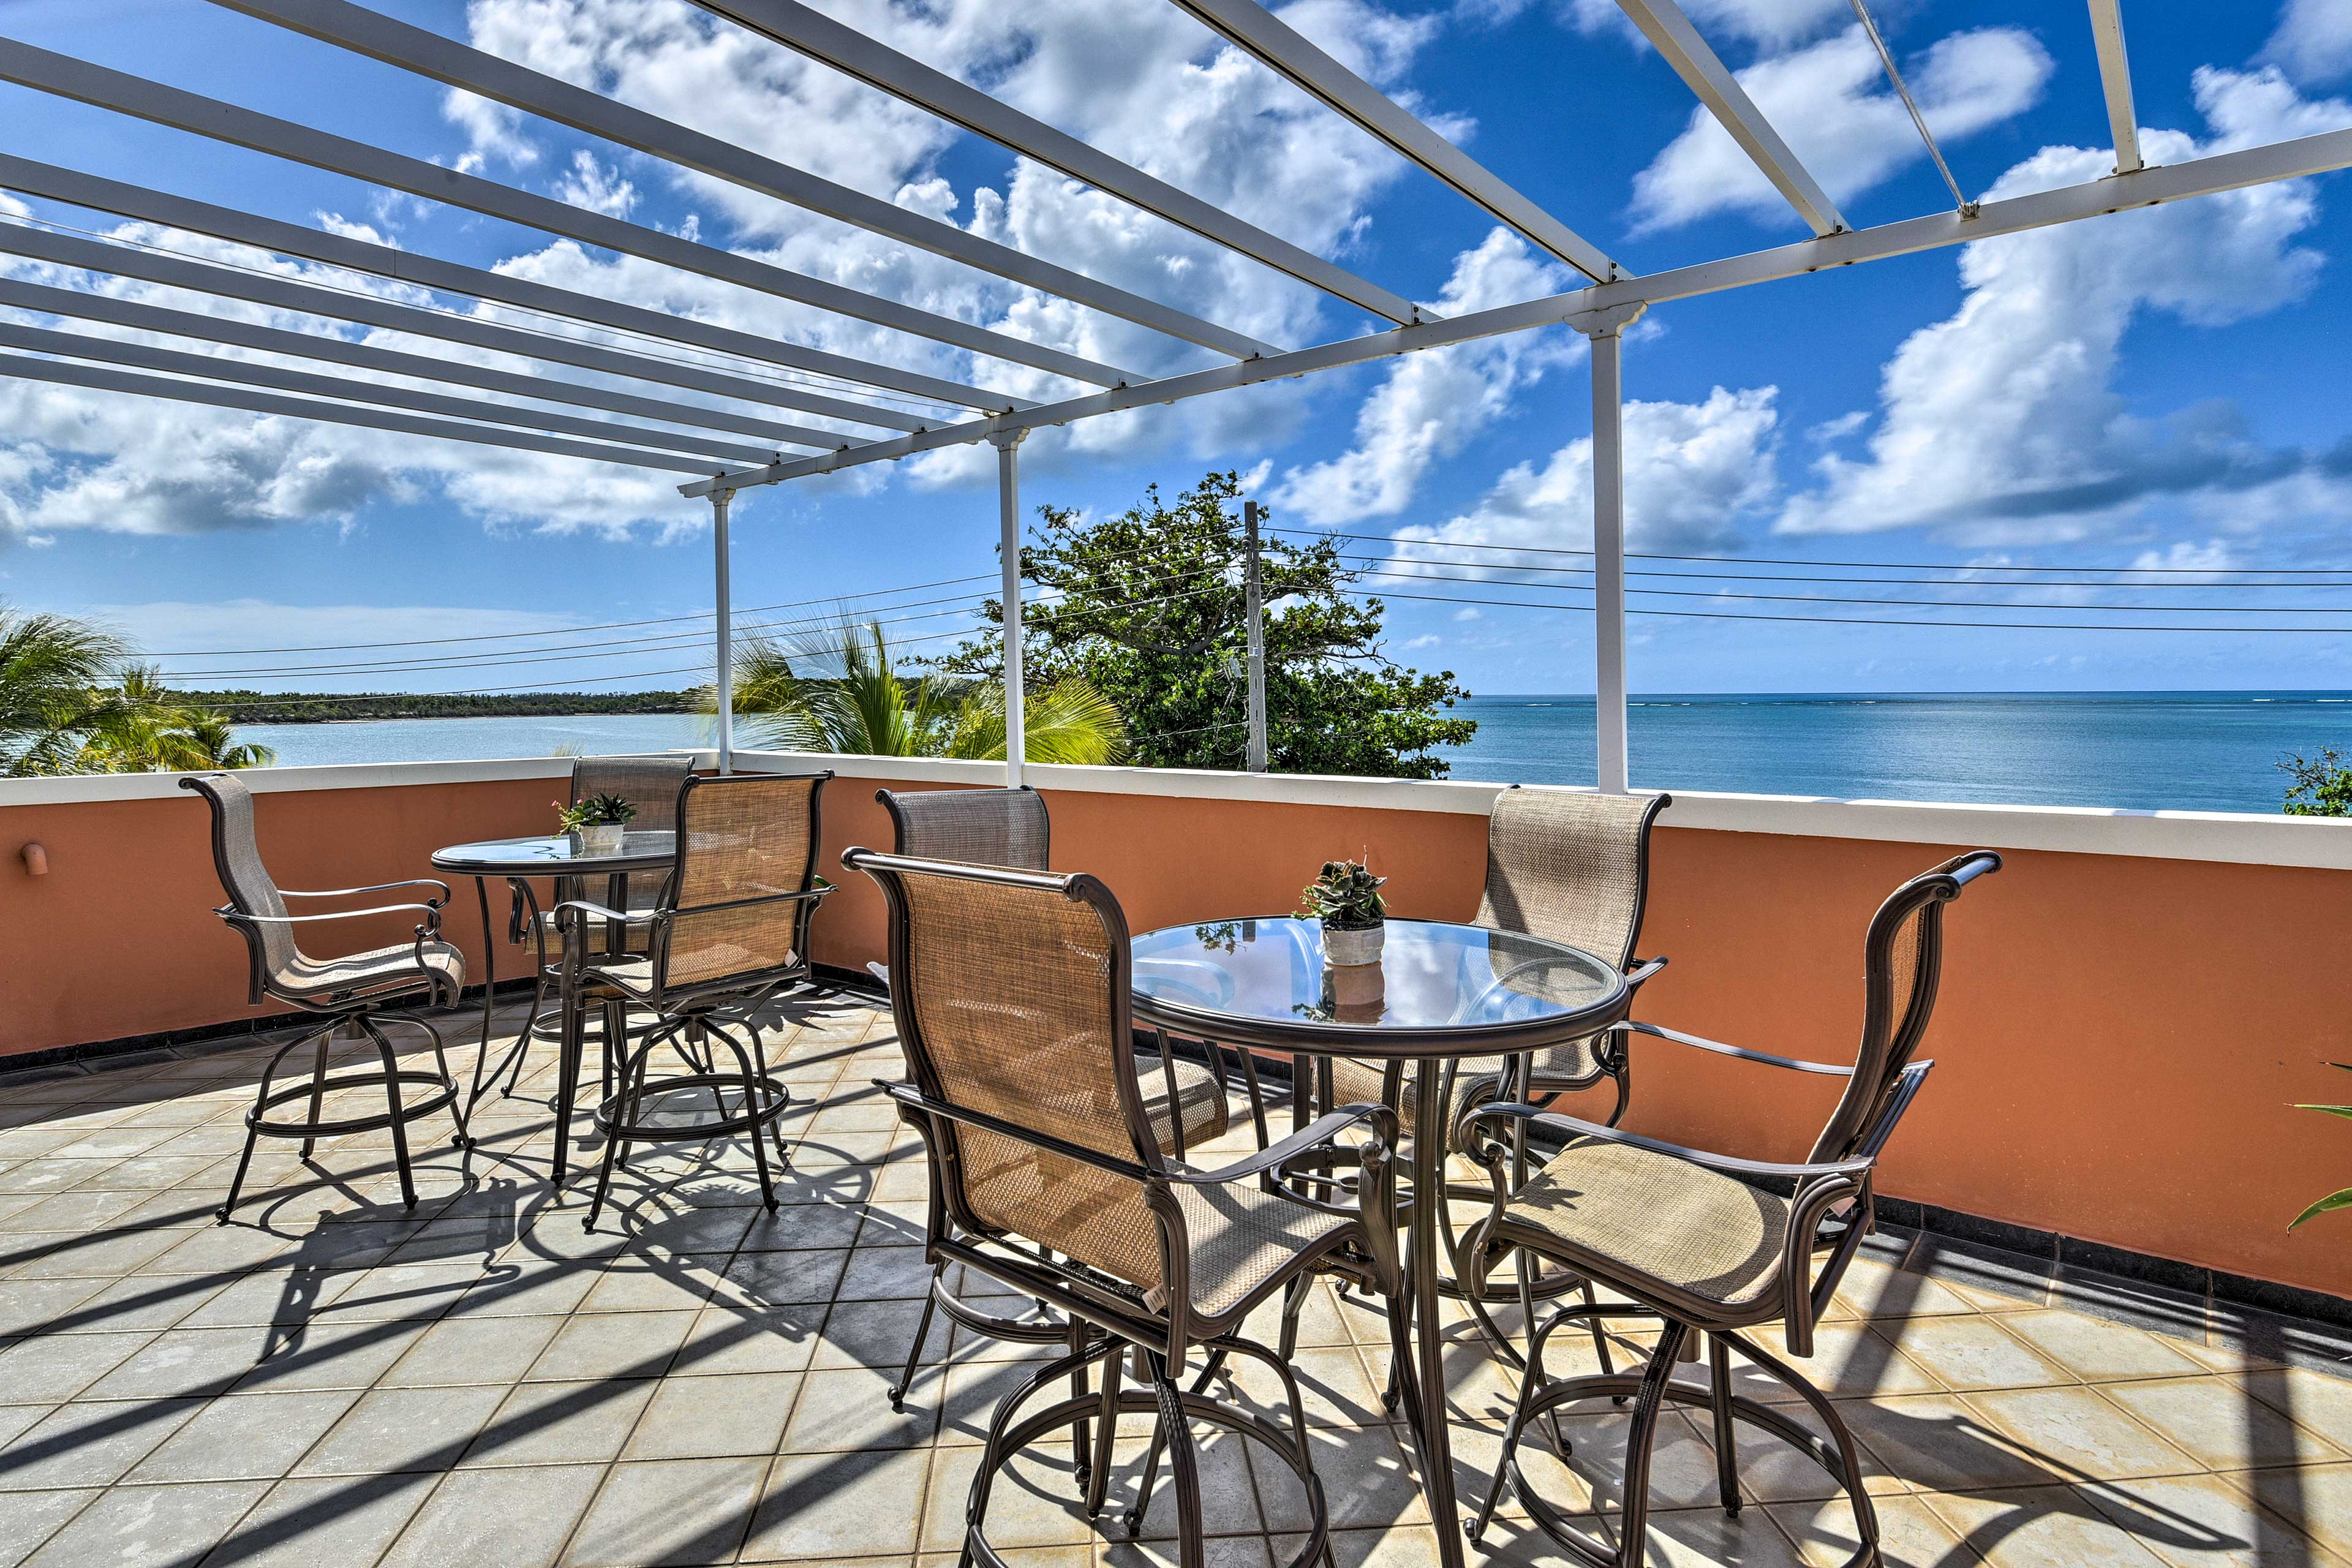 Enjoy cocktails with ocean views and stick around for the gorgeous sunset.